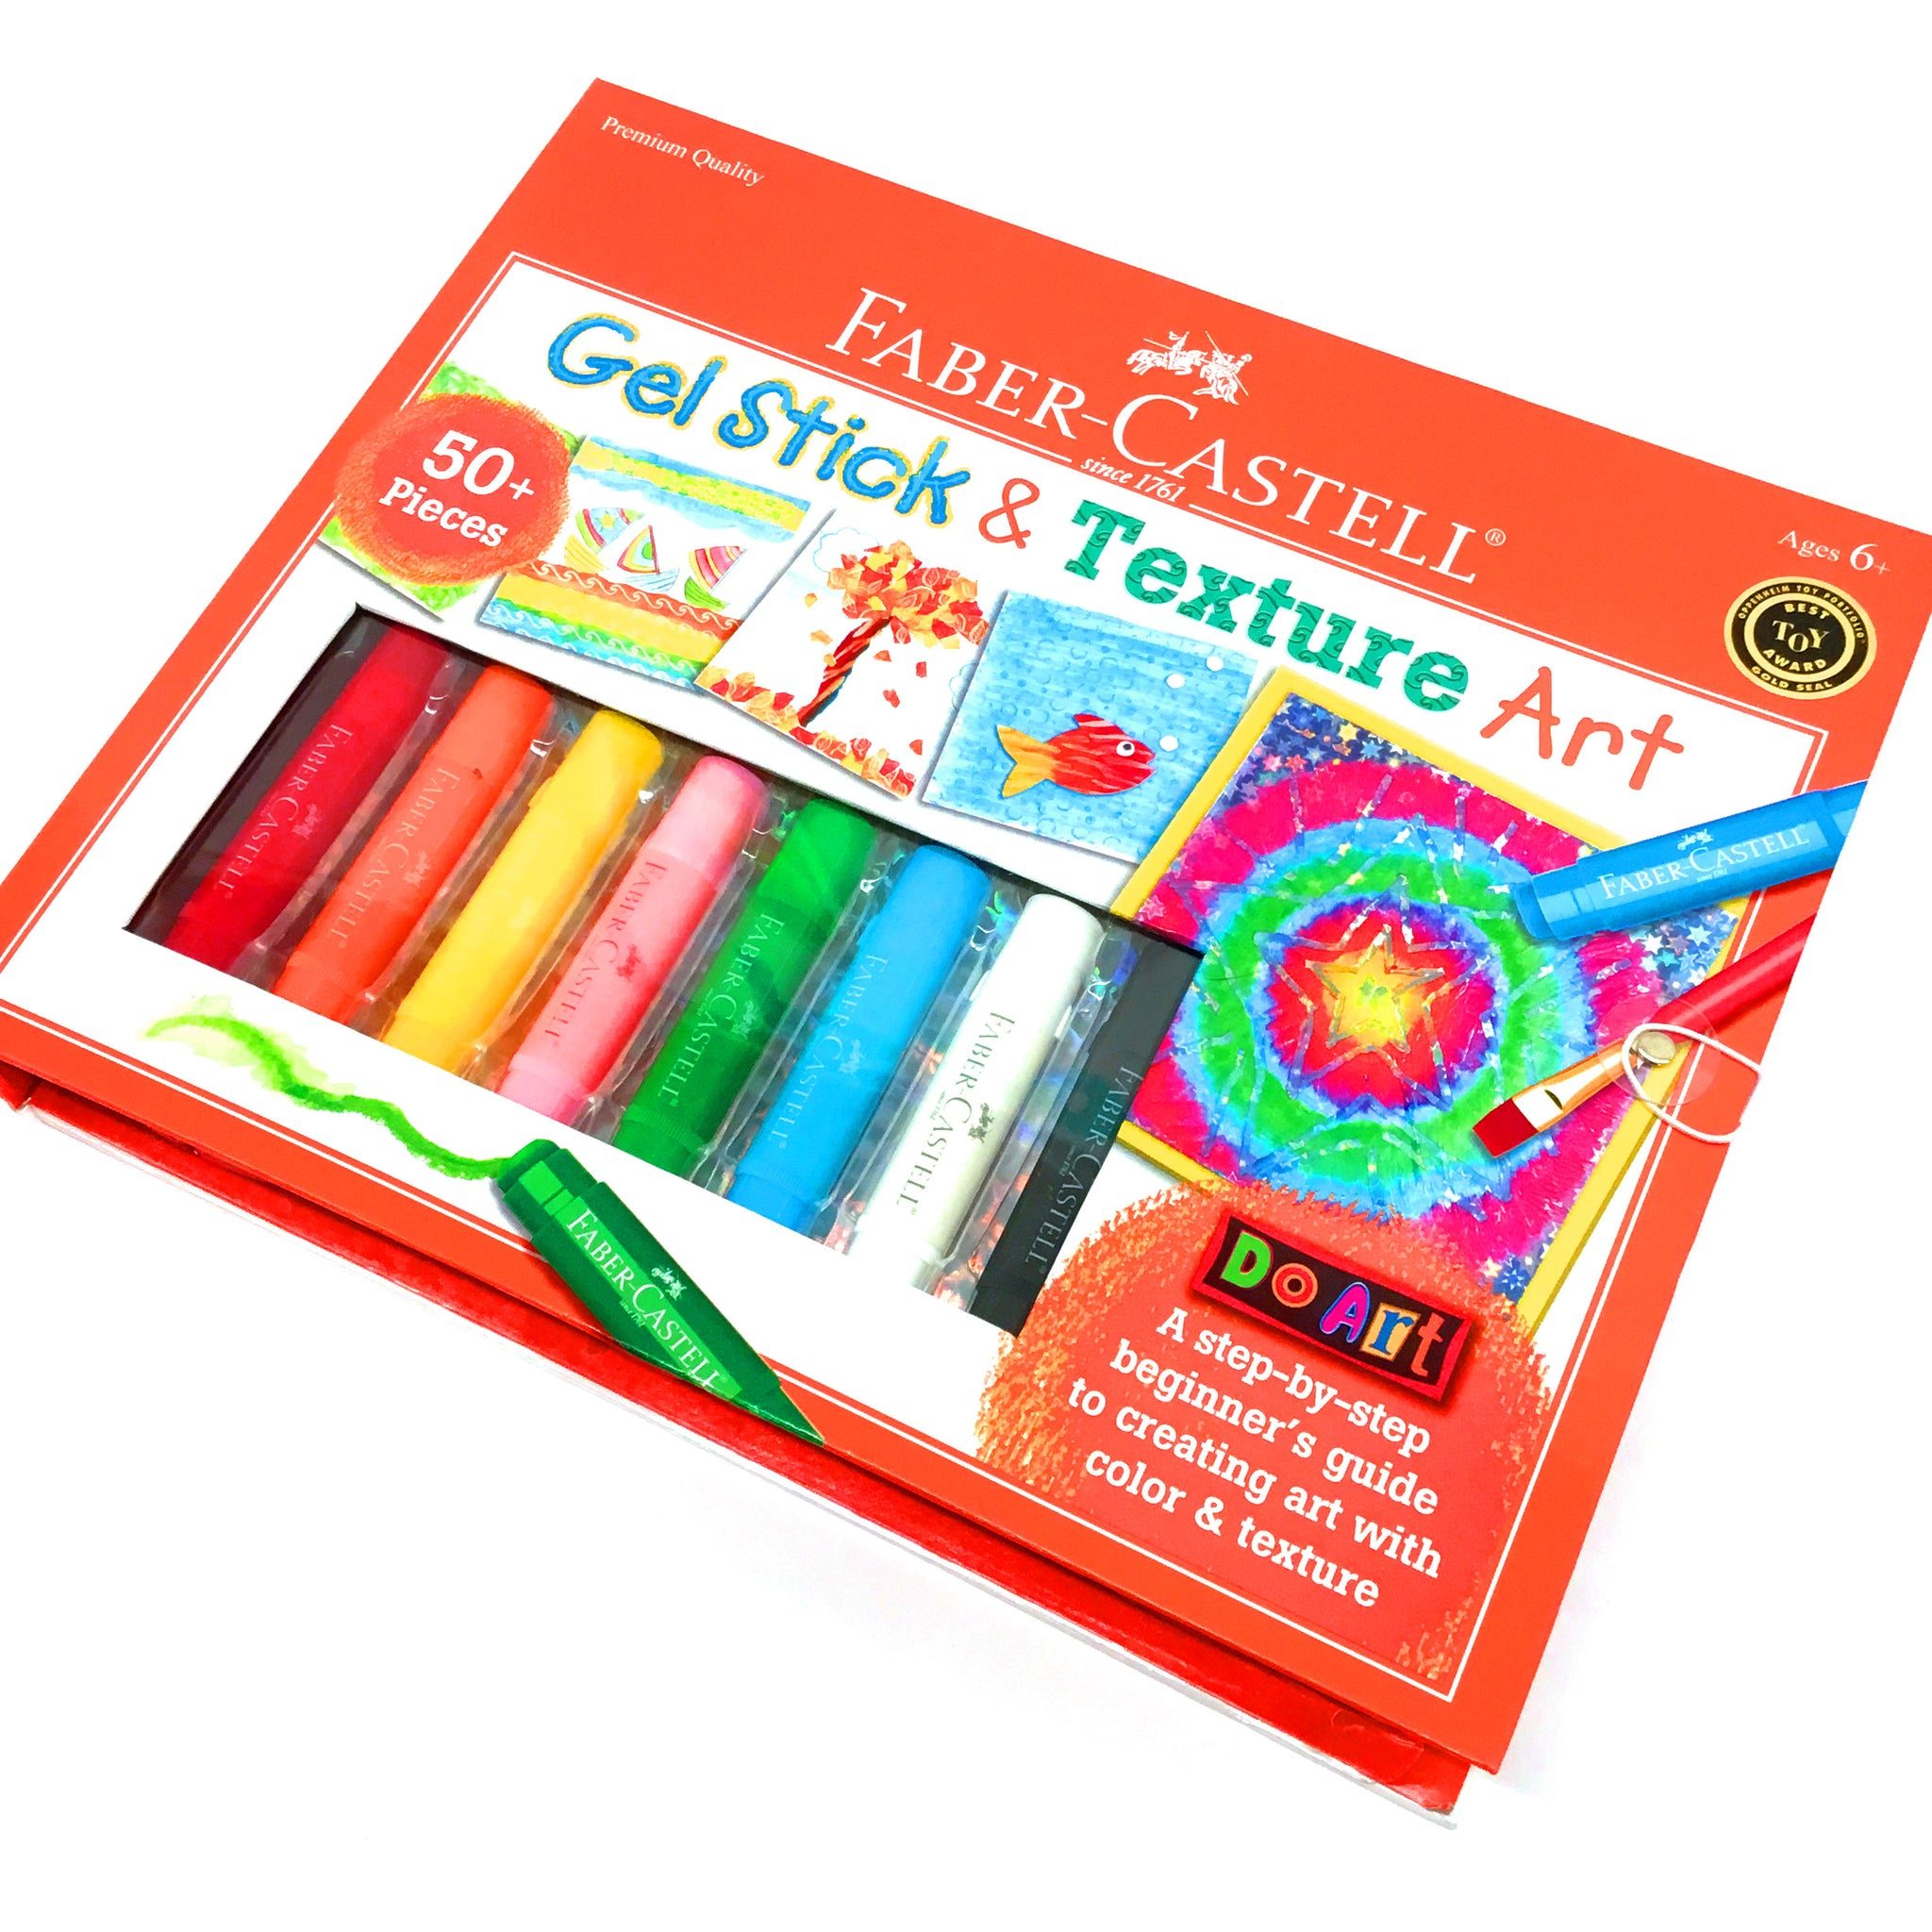 Faber-Castell Gel Stick & Texture Art Kit